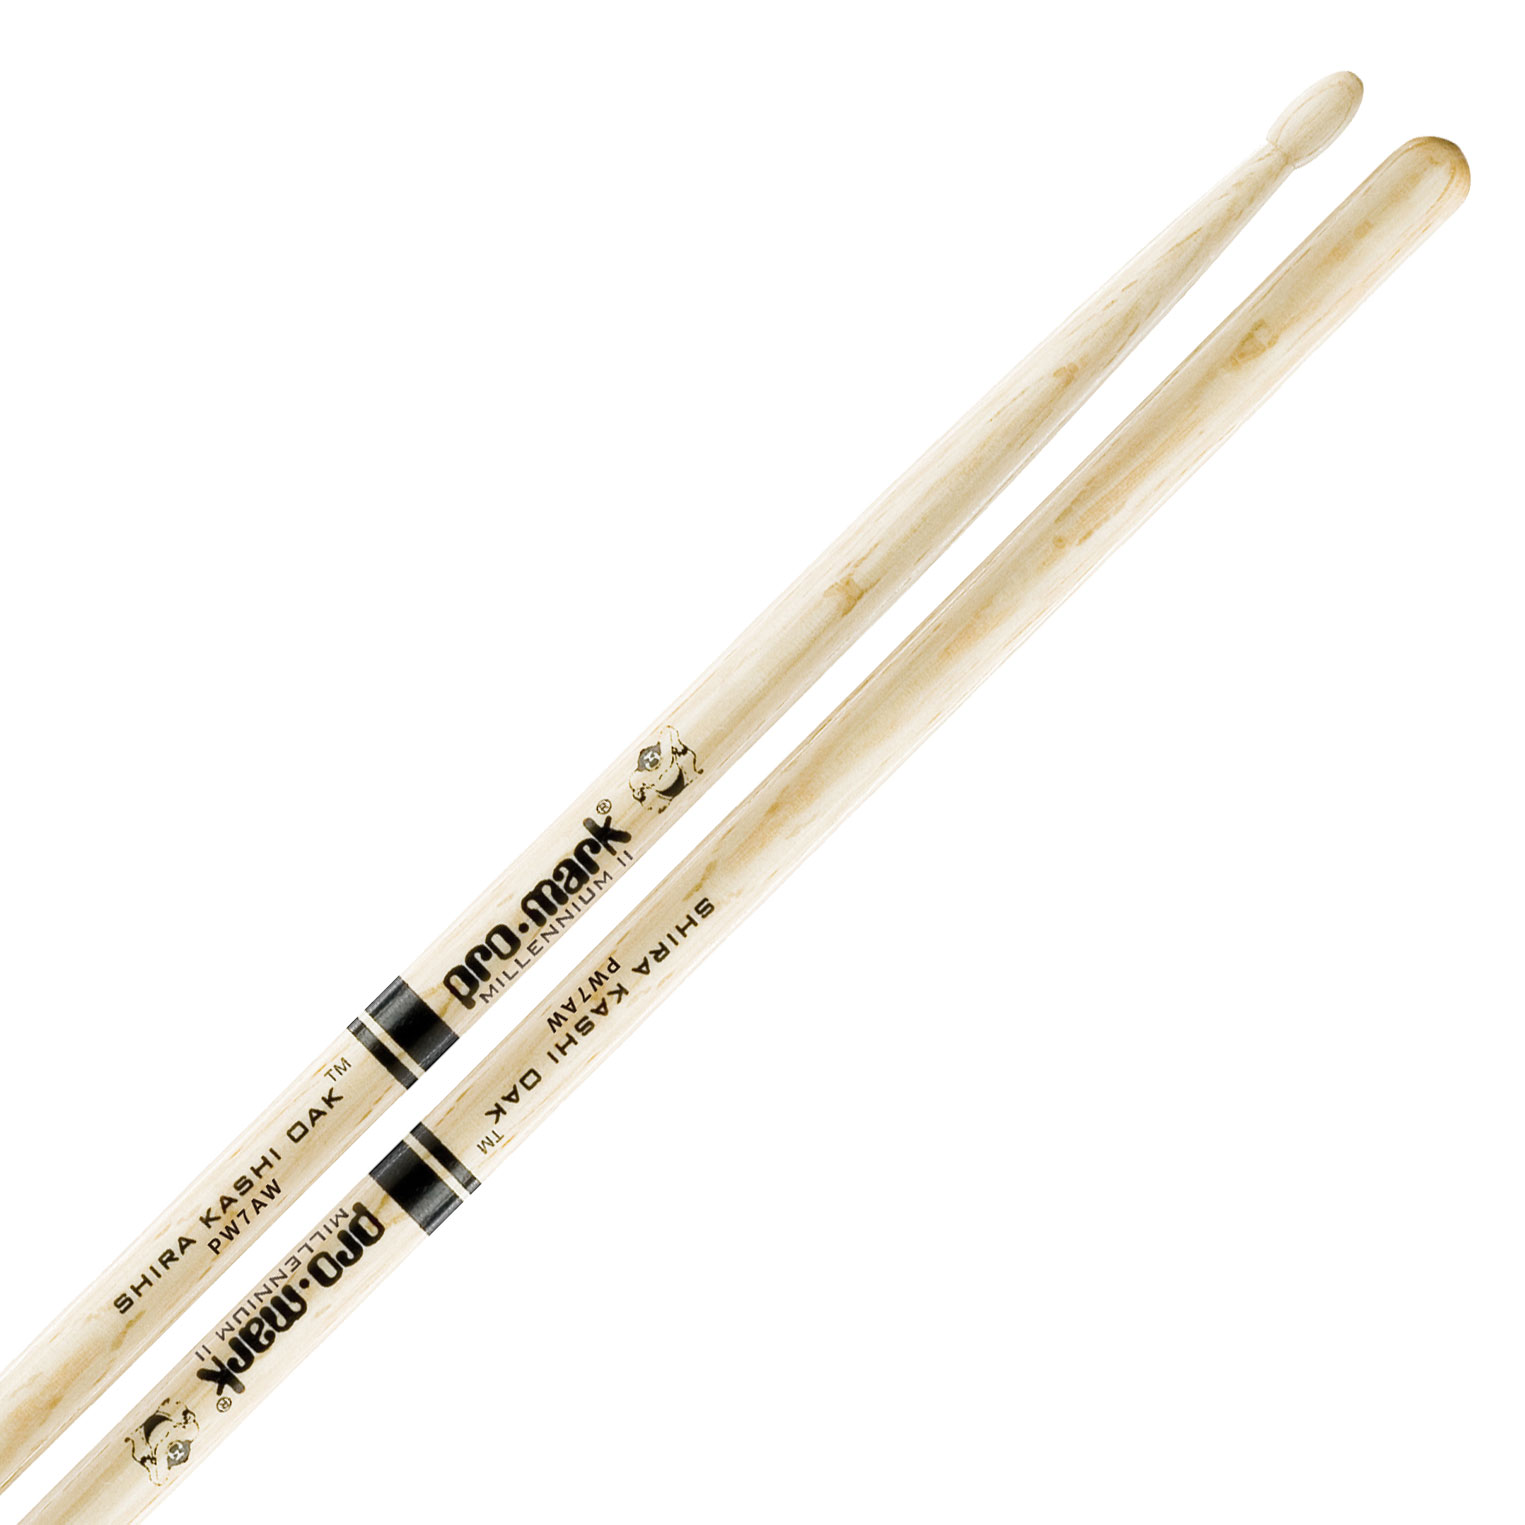 Promark Shira Kashi Oak 7A Wood Tip Drumsticks